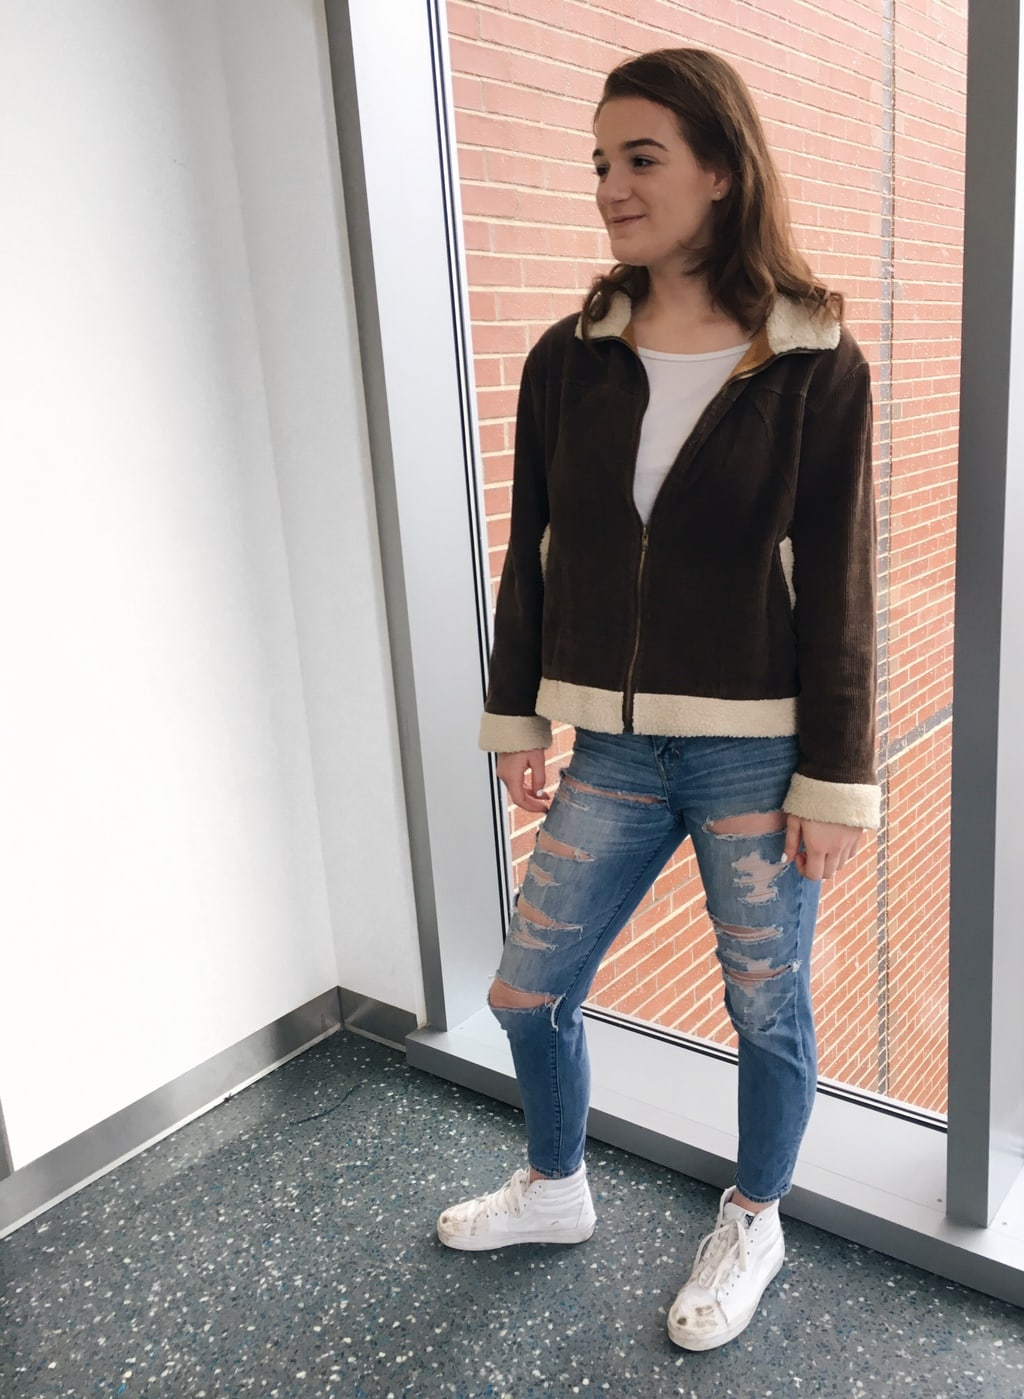 University of Massachusetts student Erin wears a brown corduroy jacket with shearling details, a white tee, ultra distressed denim jeans, and white Vans.